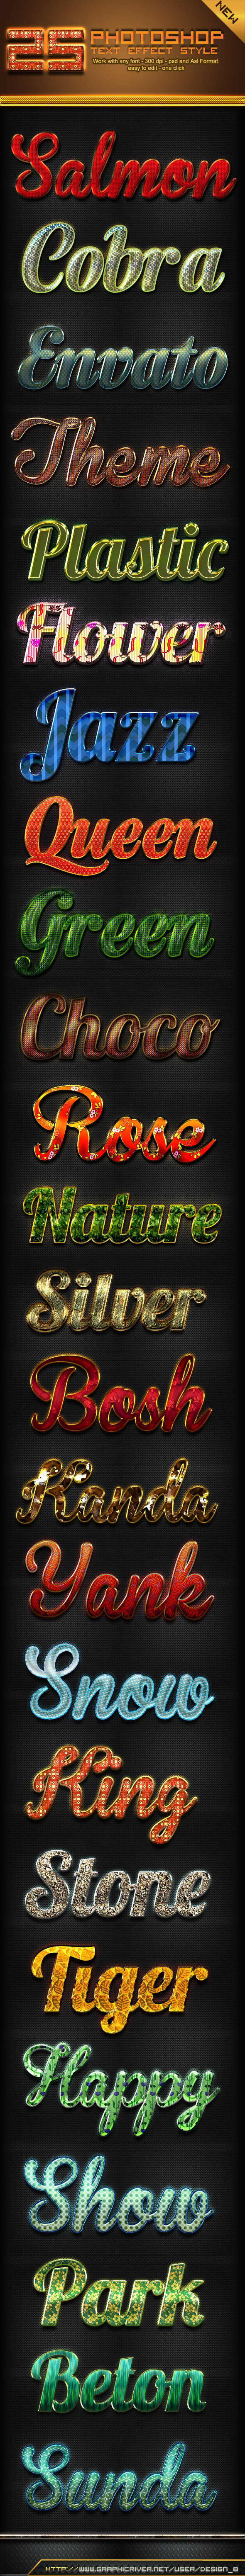 GraphicRiver 25 Photoshop Text Effect Styles 10622361